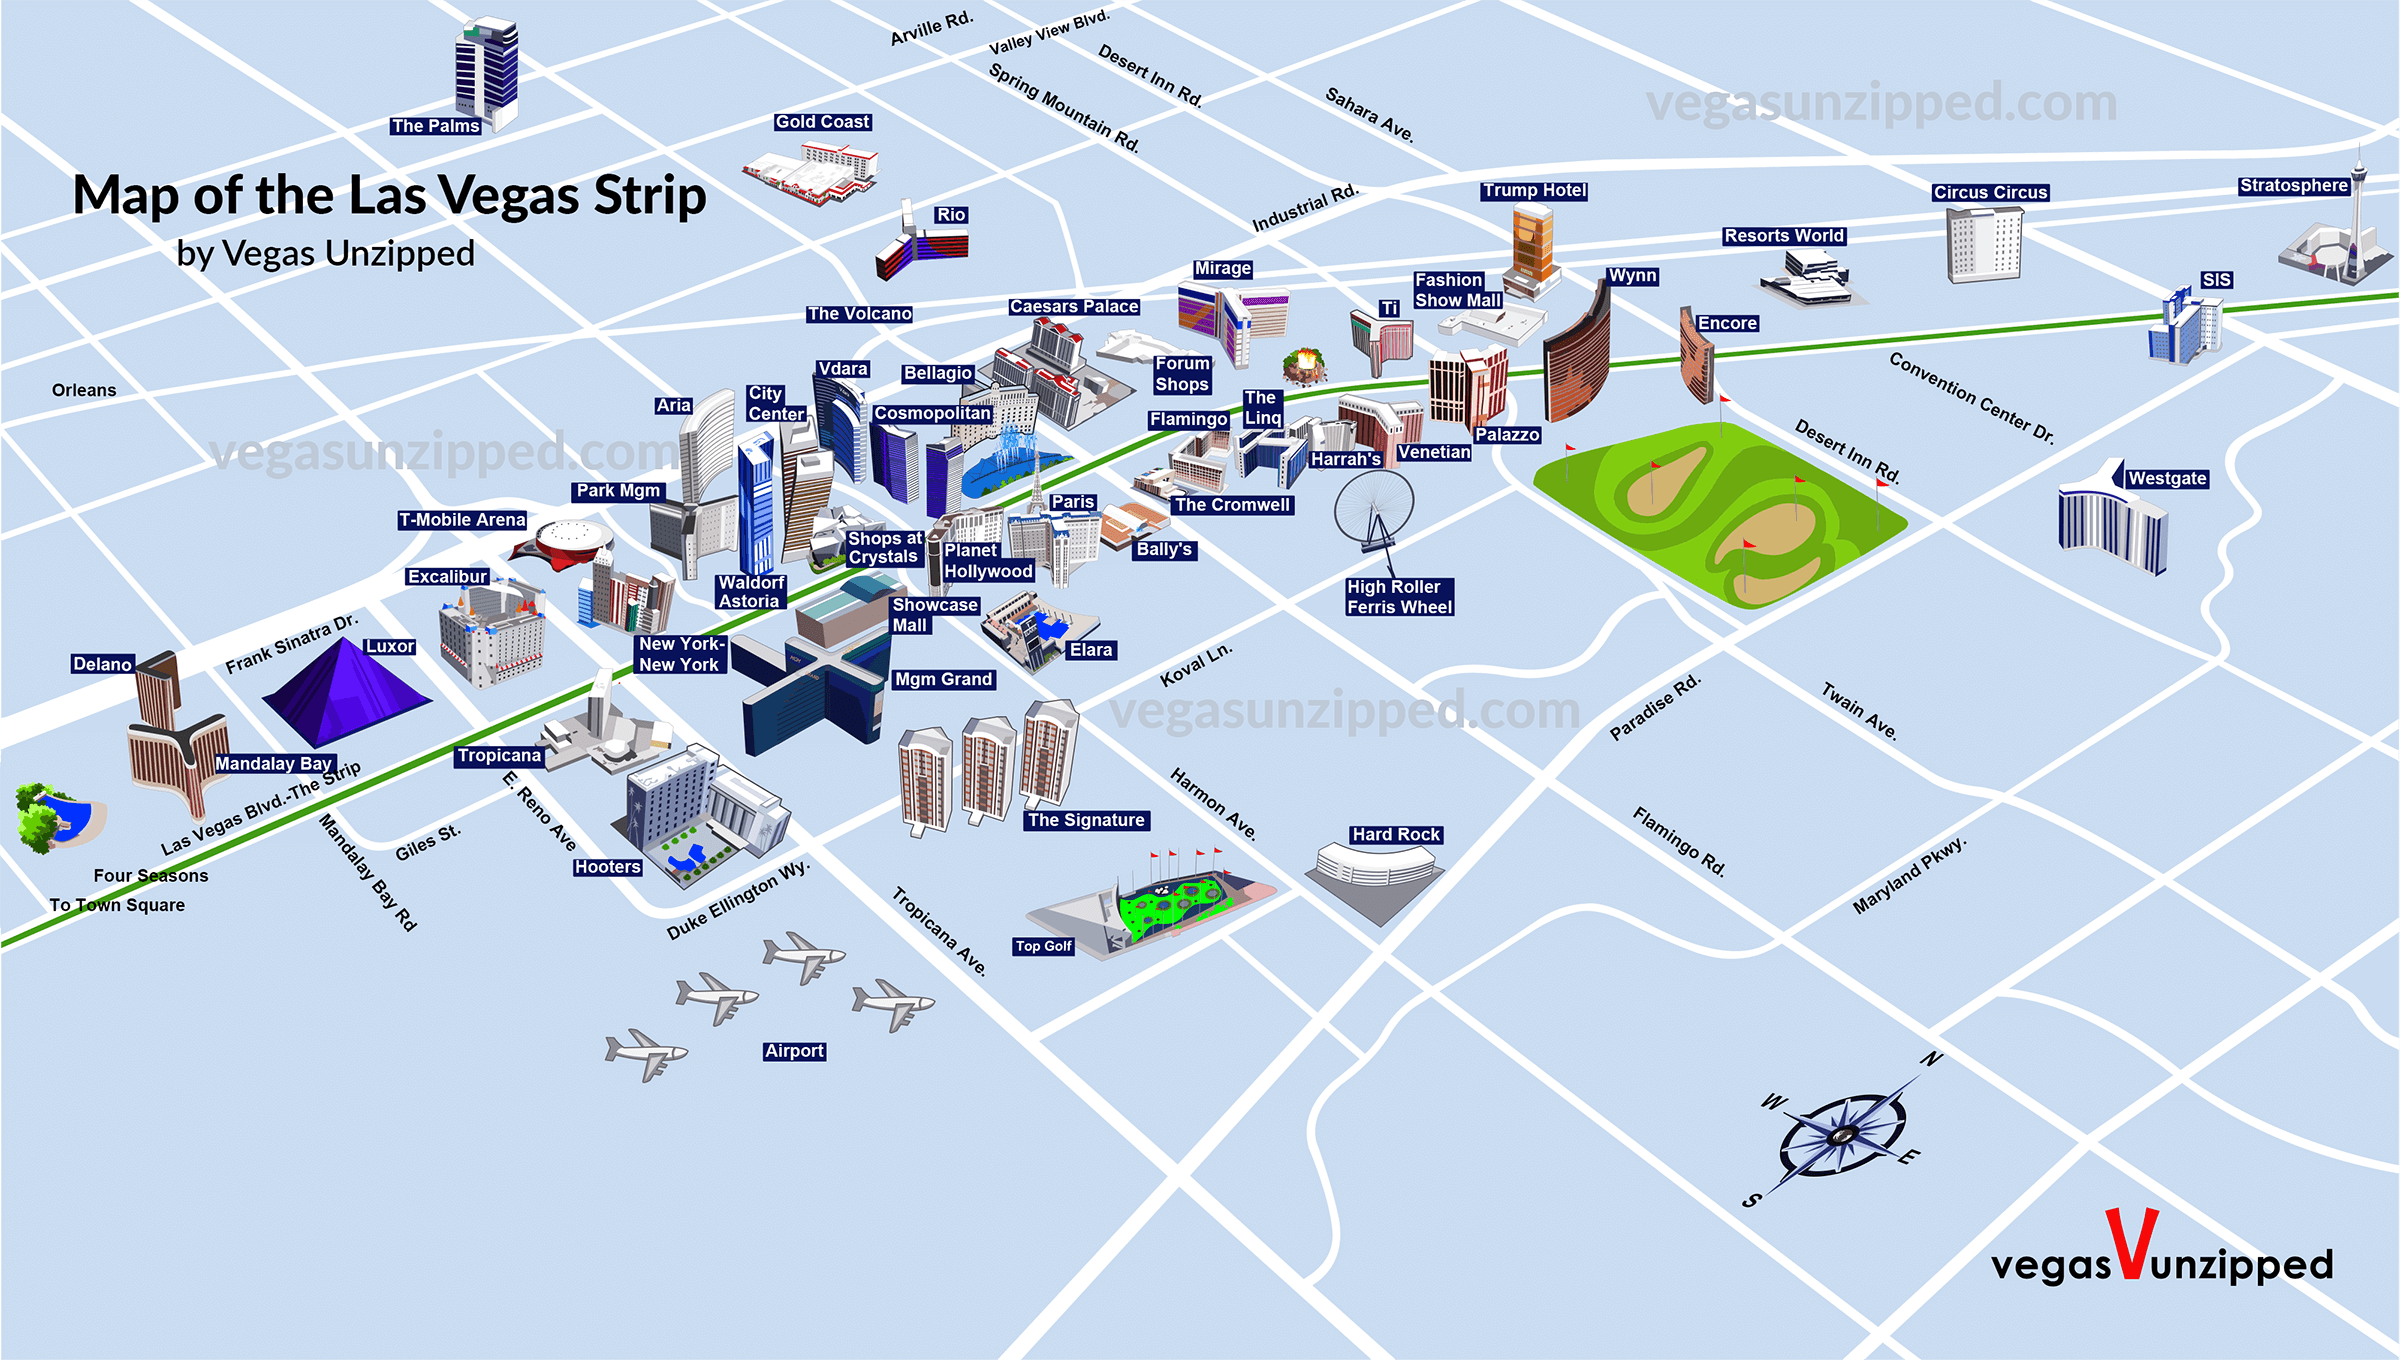 Las Vegas Strip Map - Hotel Maps [2019 ] - PDF, 3D ... on rail map, minecraft server map, very big map, germany map, india map, classic map, beach map, vintage map, anaconda map, asia map, nm map, tube map, birthday cake map, russia map, palm desert map,